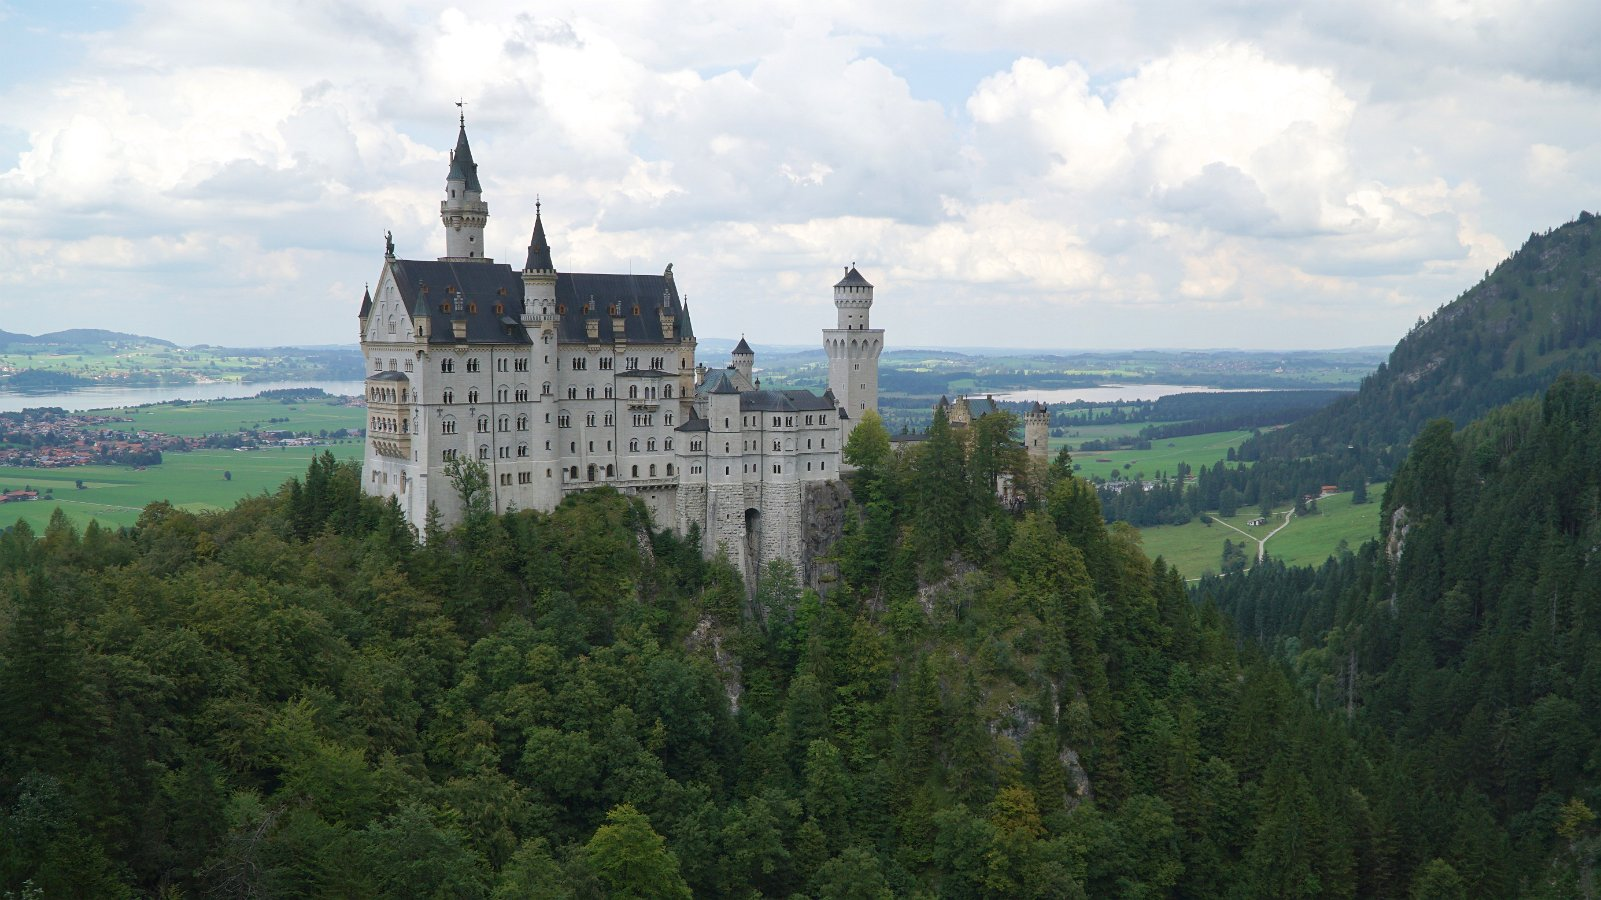 Visiting Hohenschwangau and Neuschwanstein Castles